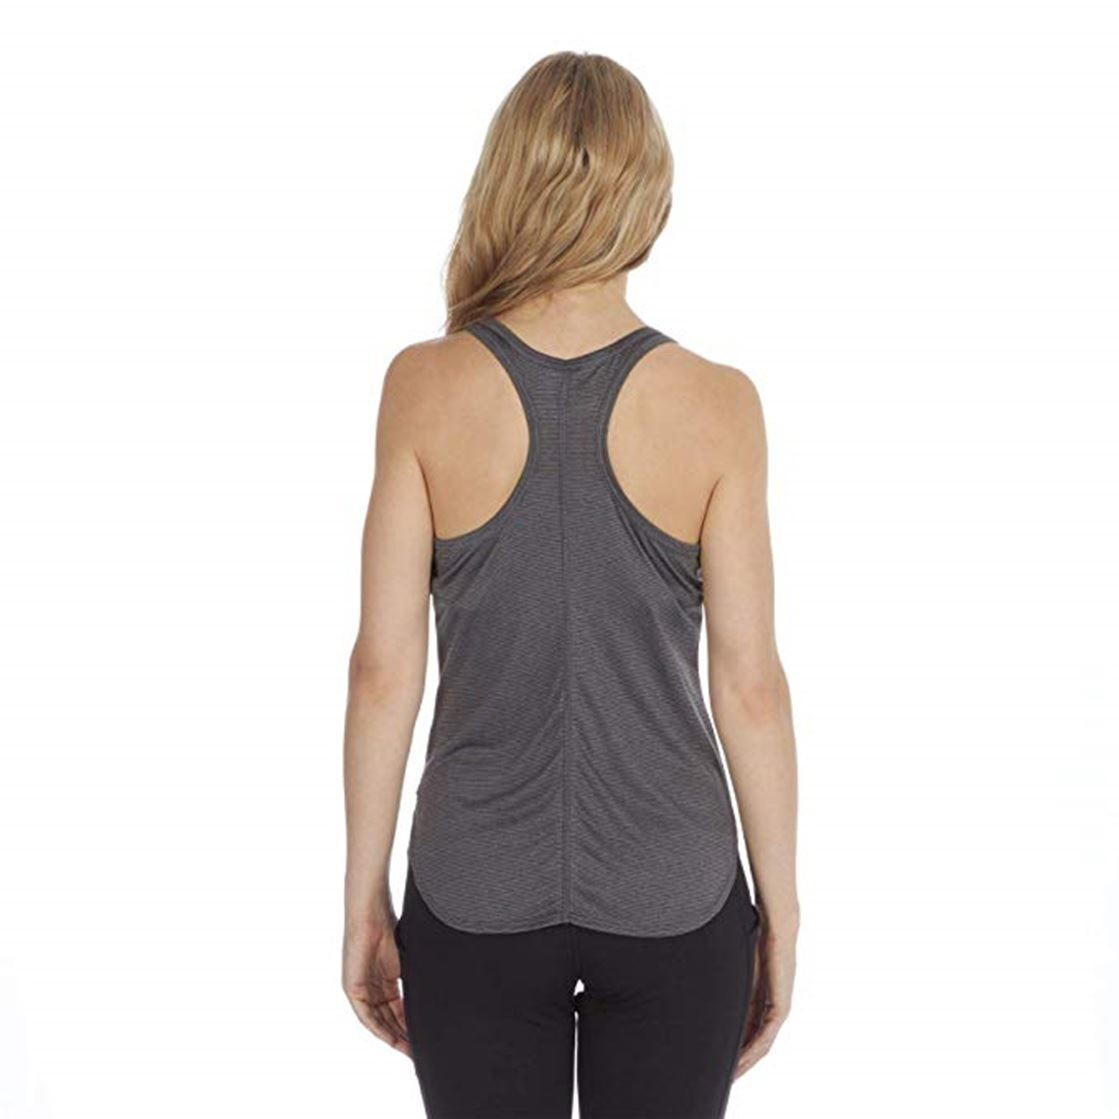 Ladies-Womens-Red-Tag-Active-Racer-Back-Yoga-Gym-Exercise-Vest-Tank-Top thumbnail 3